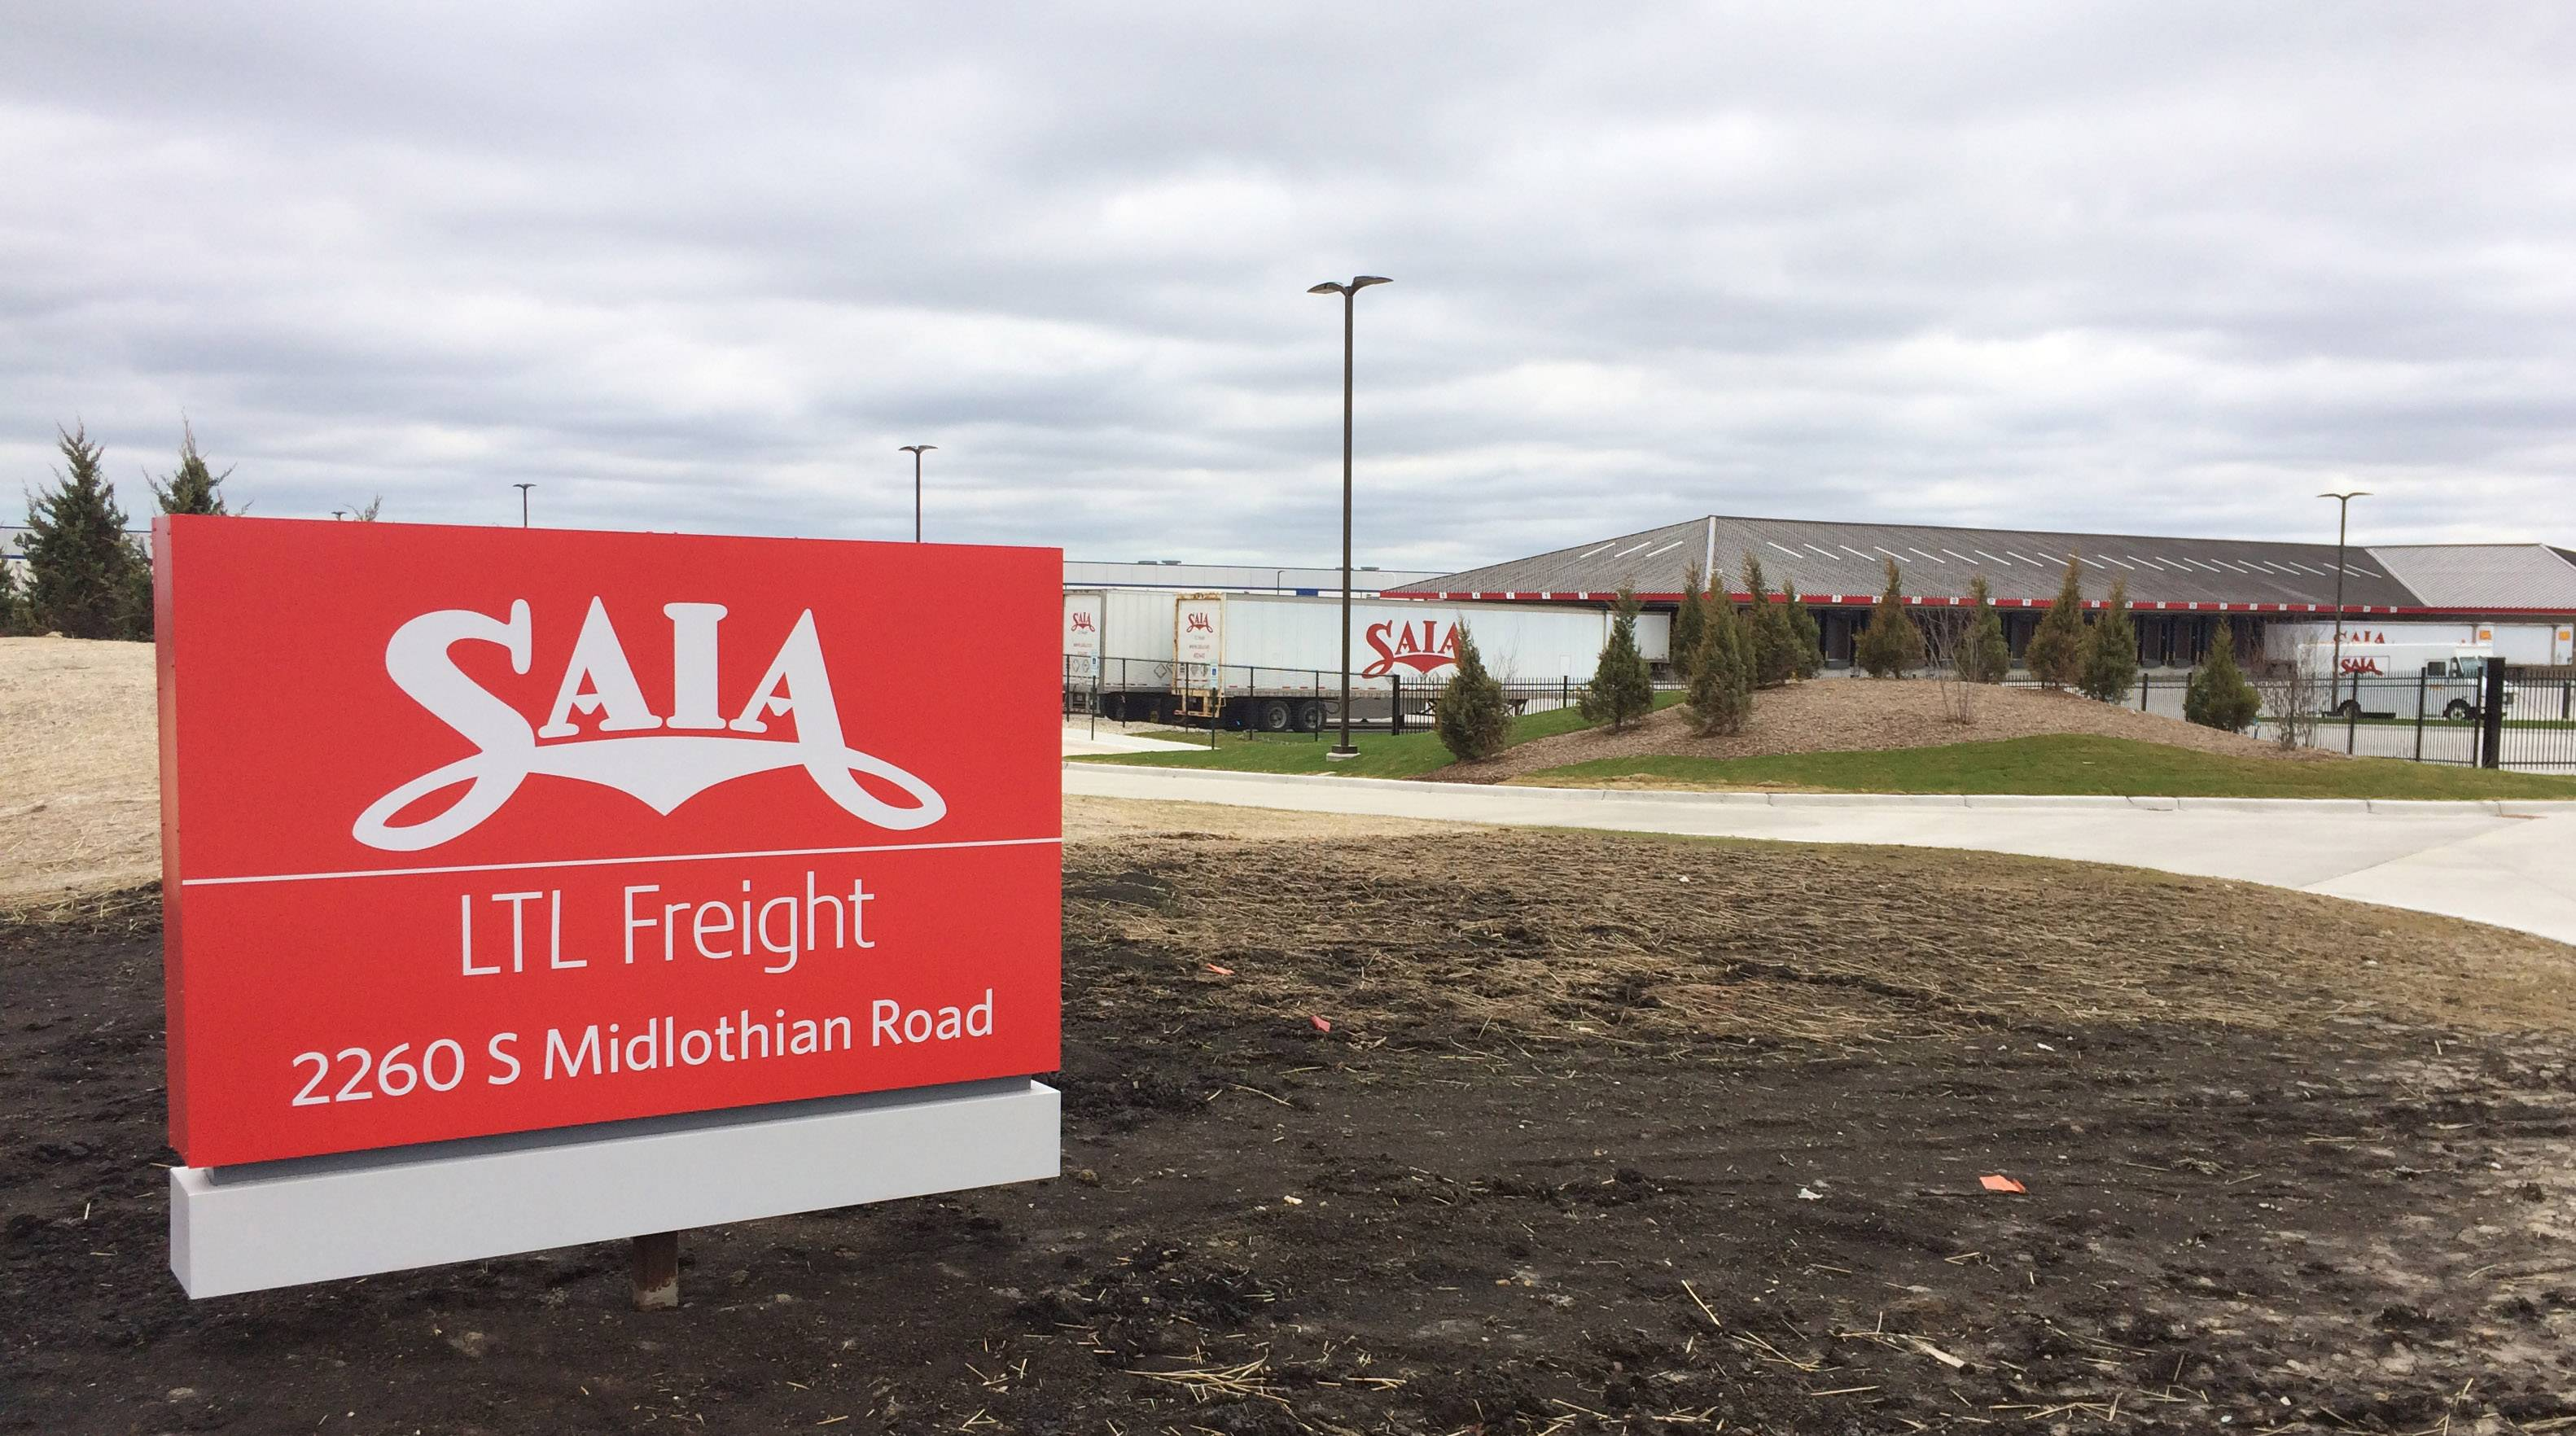 Saia truck terminal in Grayslake open for business despite legal challenge